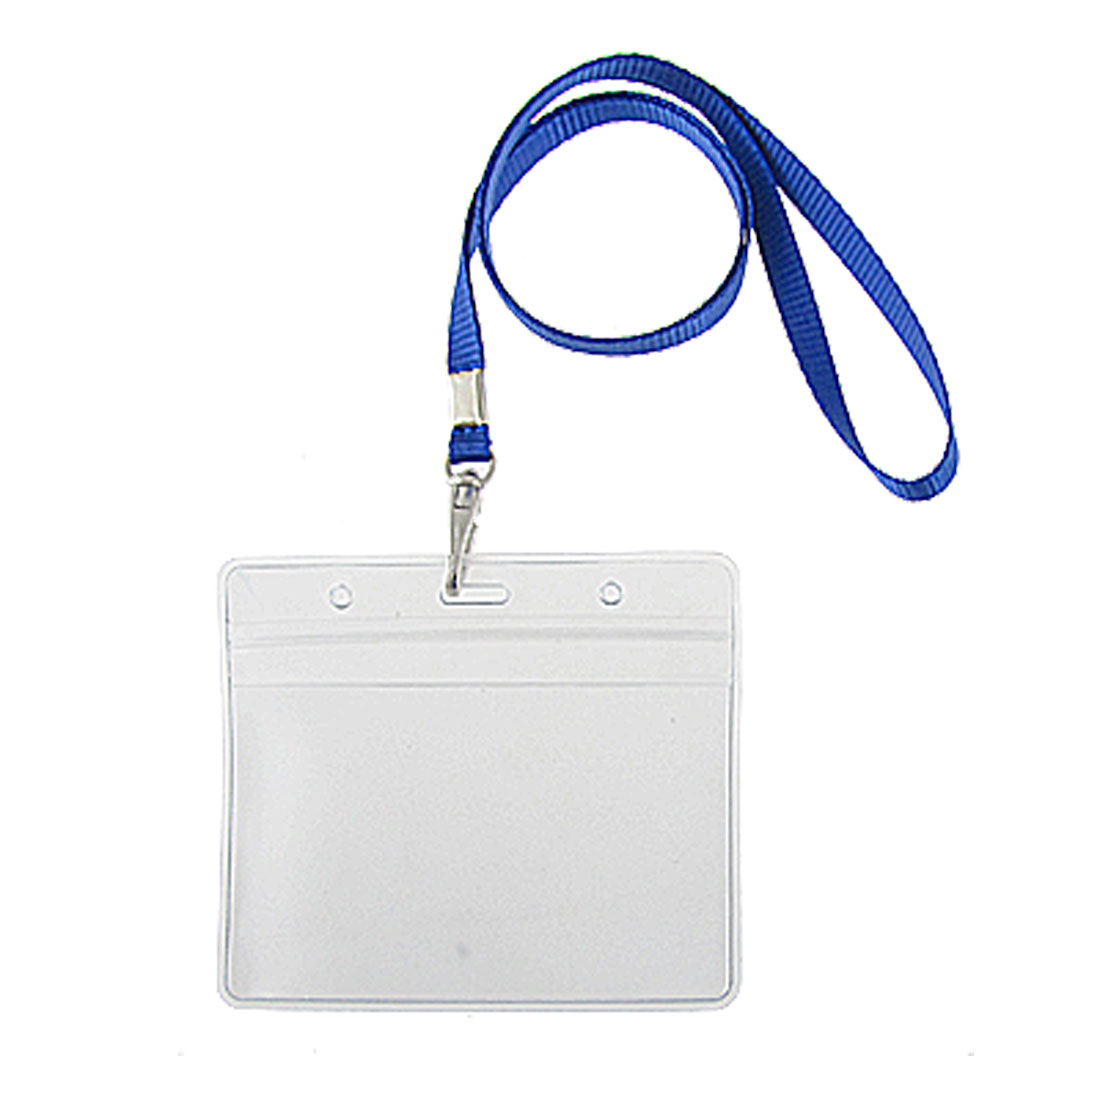 2 Pcs PVC Exhibition Name Cards Holders w Blue Lanyard